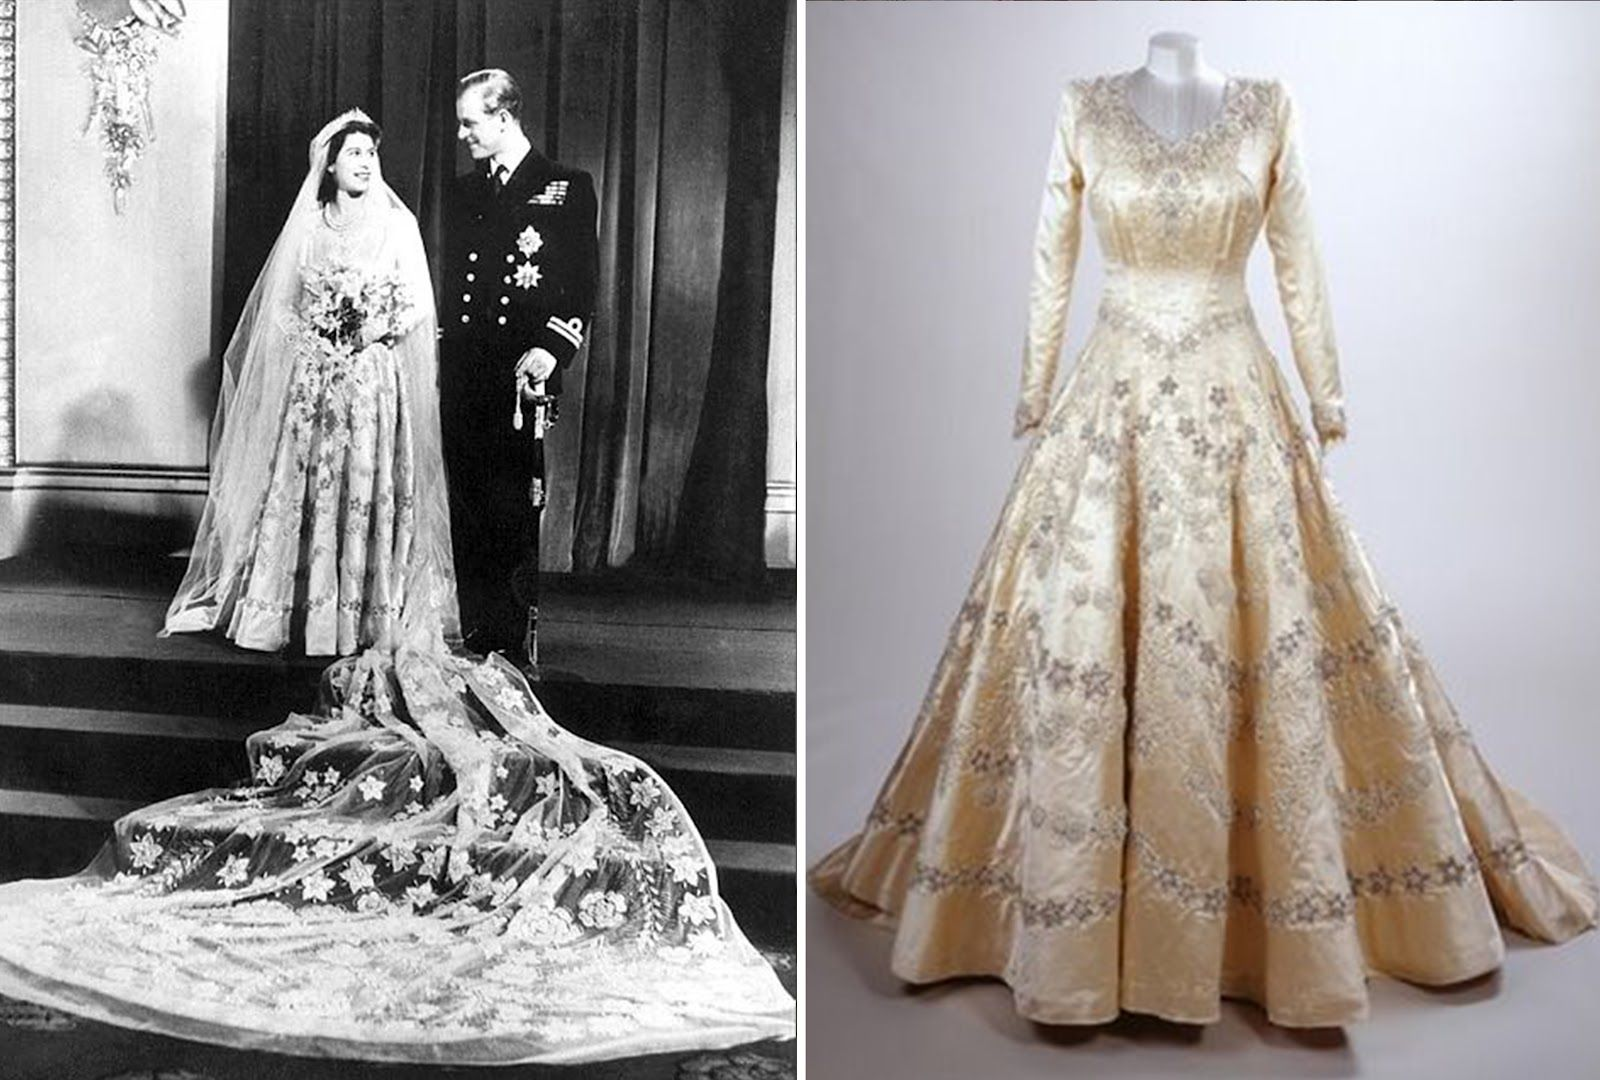 Norman Hartnell S Wedding Dress That He Designed For The Queen